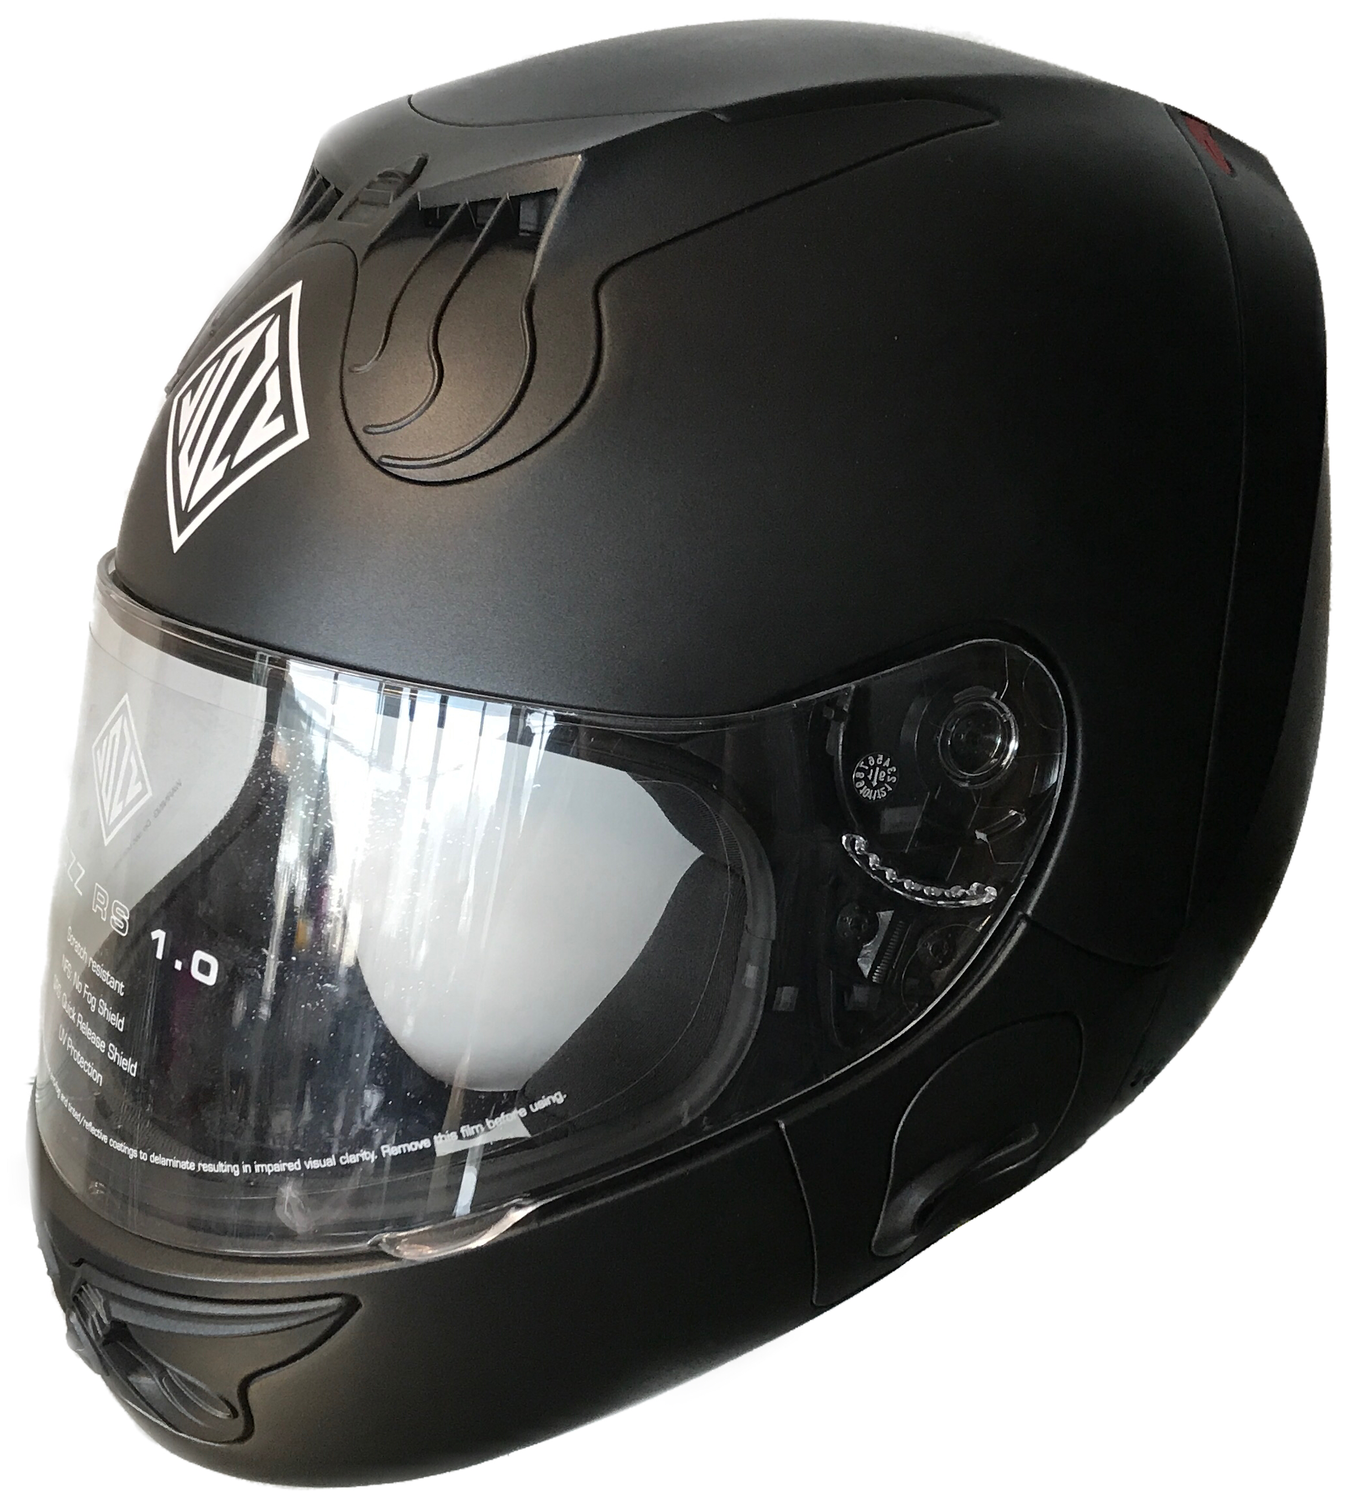 Vozz RS1.0 Clear Visor